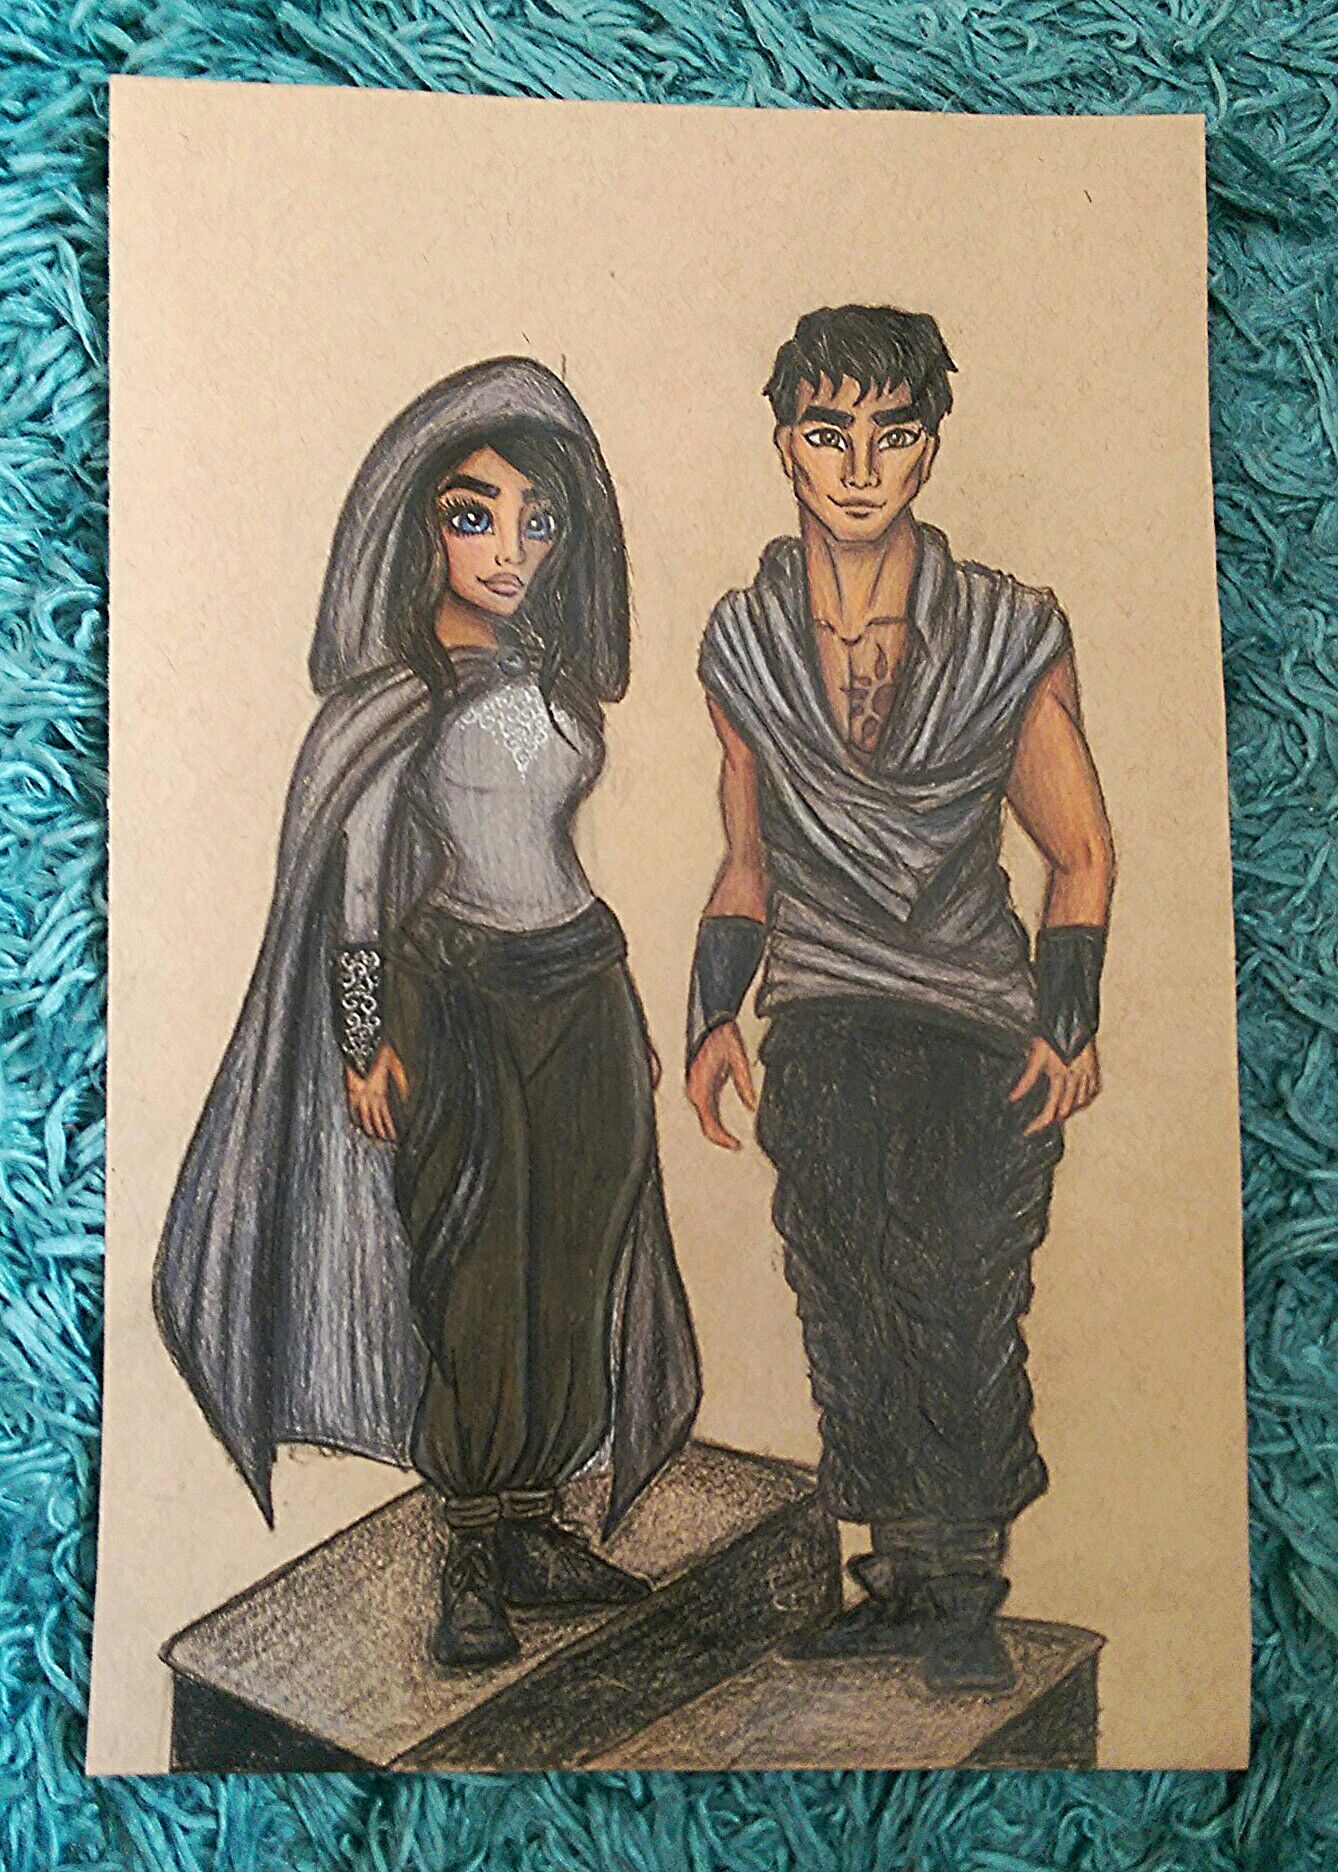 Amani (blue eyed bandit) and Jin drawing from Rebel of the sands (by Alwyn Hamilton) Using Faber Castell polychromos pencils.